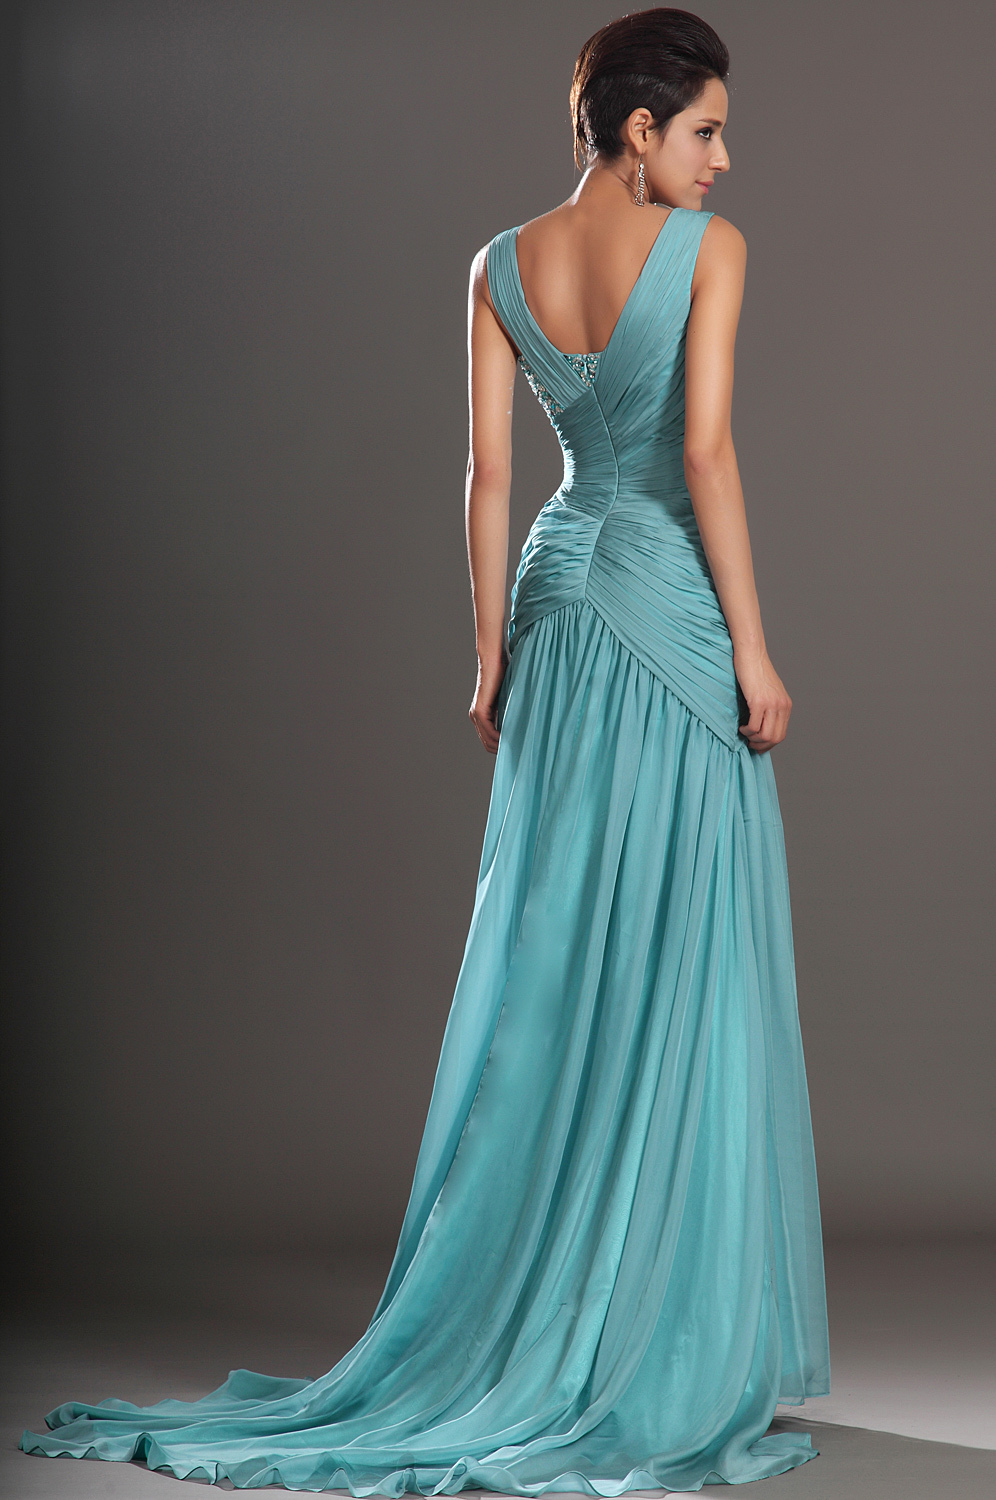 Beautiful 2014 prom dresses - Dress on sale